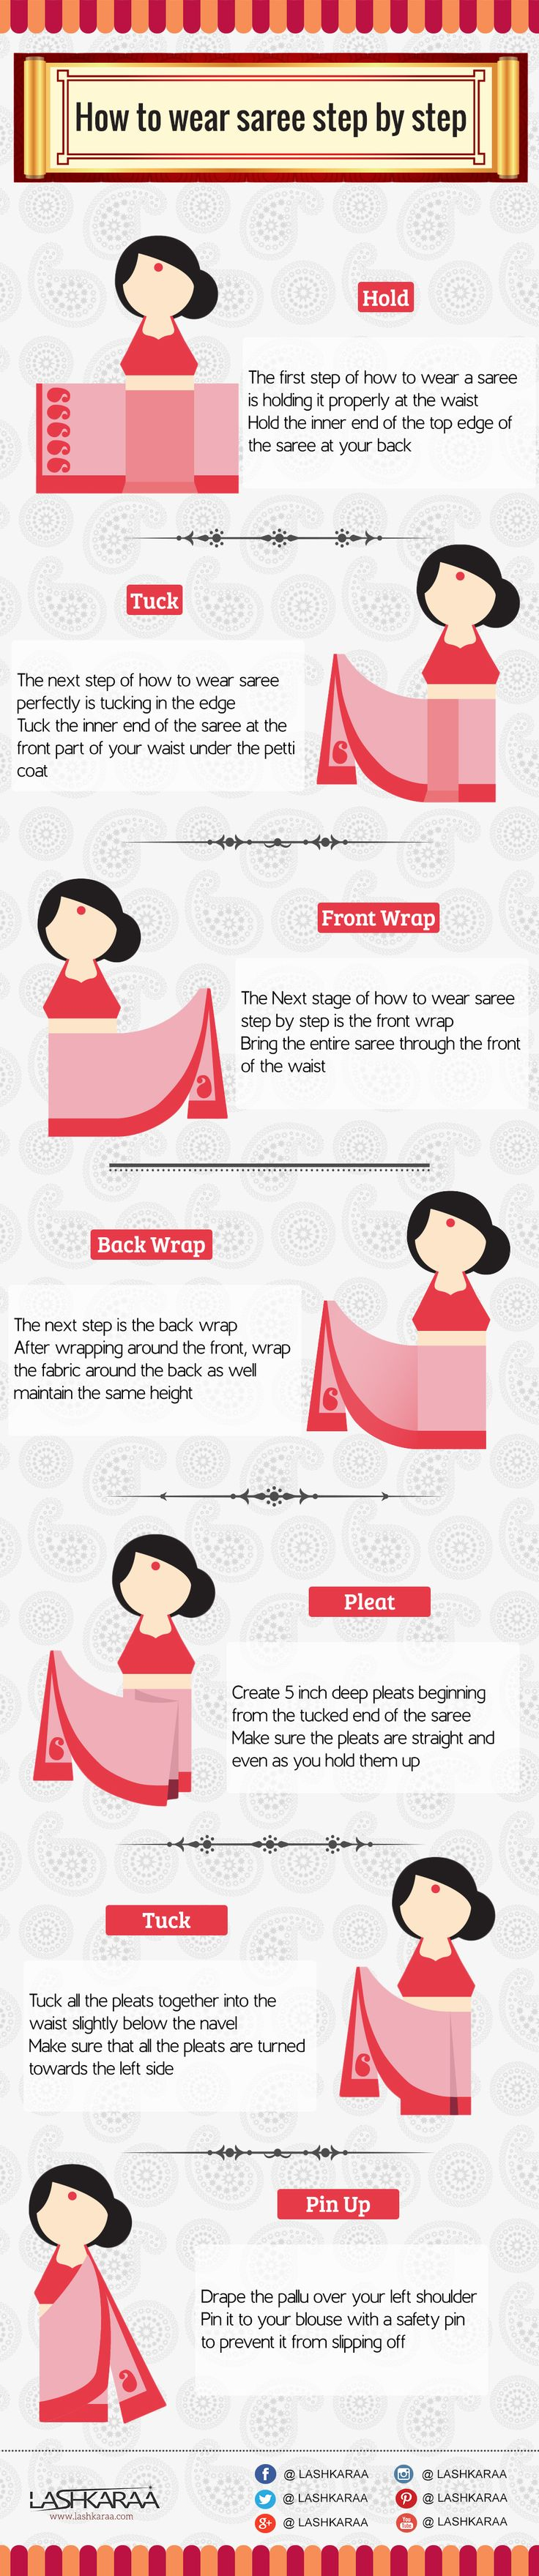 Wearing a saree for the first time is always complicated, especially for a party. Checkout our simple infographic to learn how to wear saree step by step.